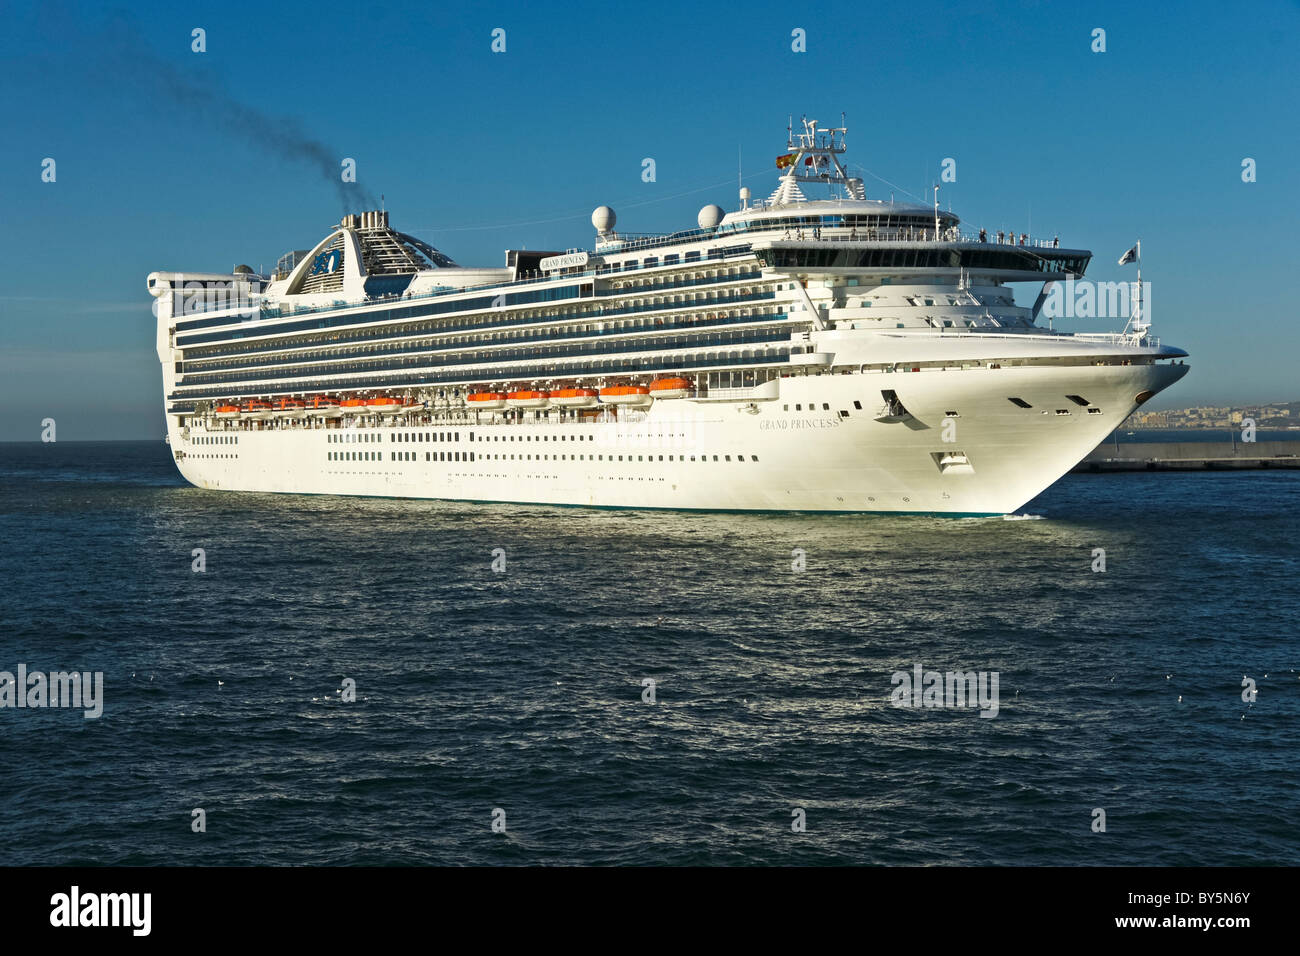 Princess Cruises Grand class cruise ship Grand Princess arriving at Malaga in Spain - Stock Image